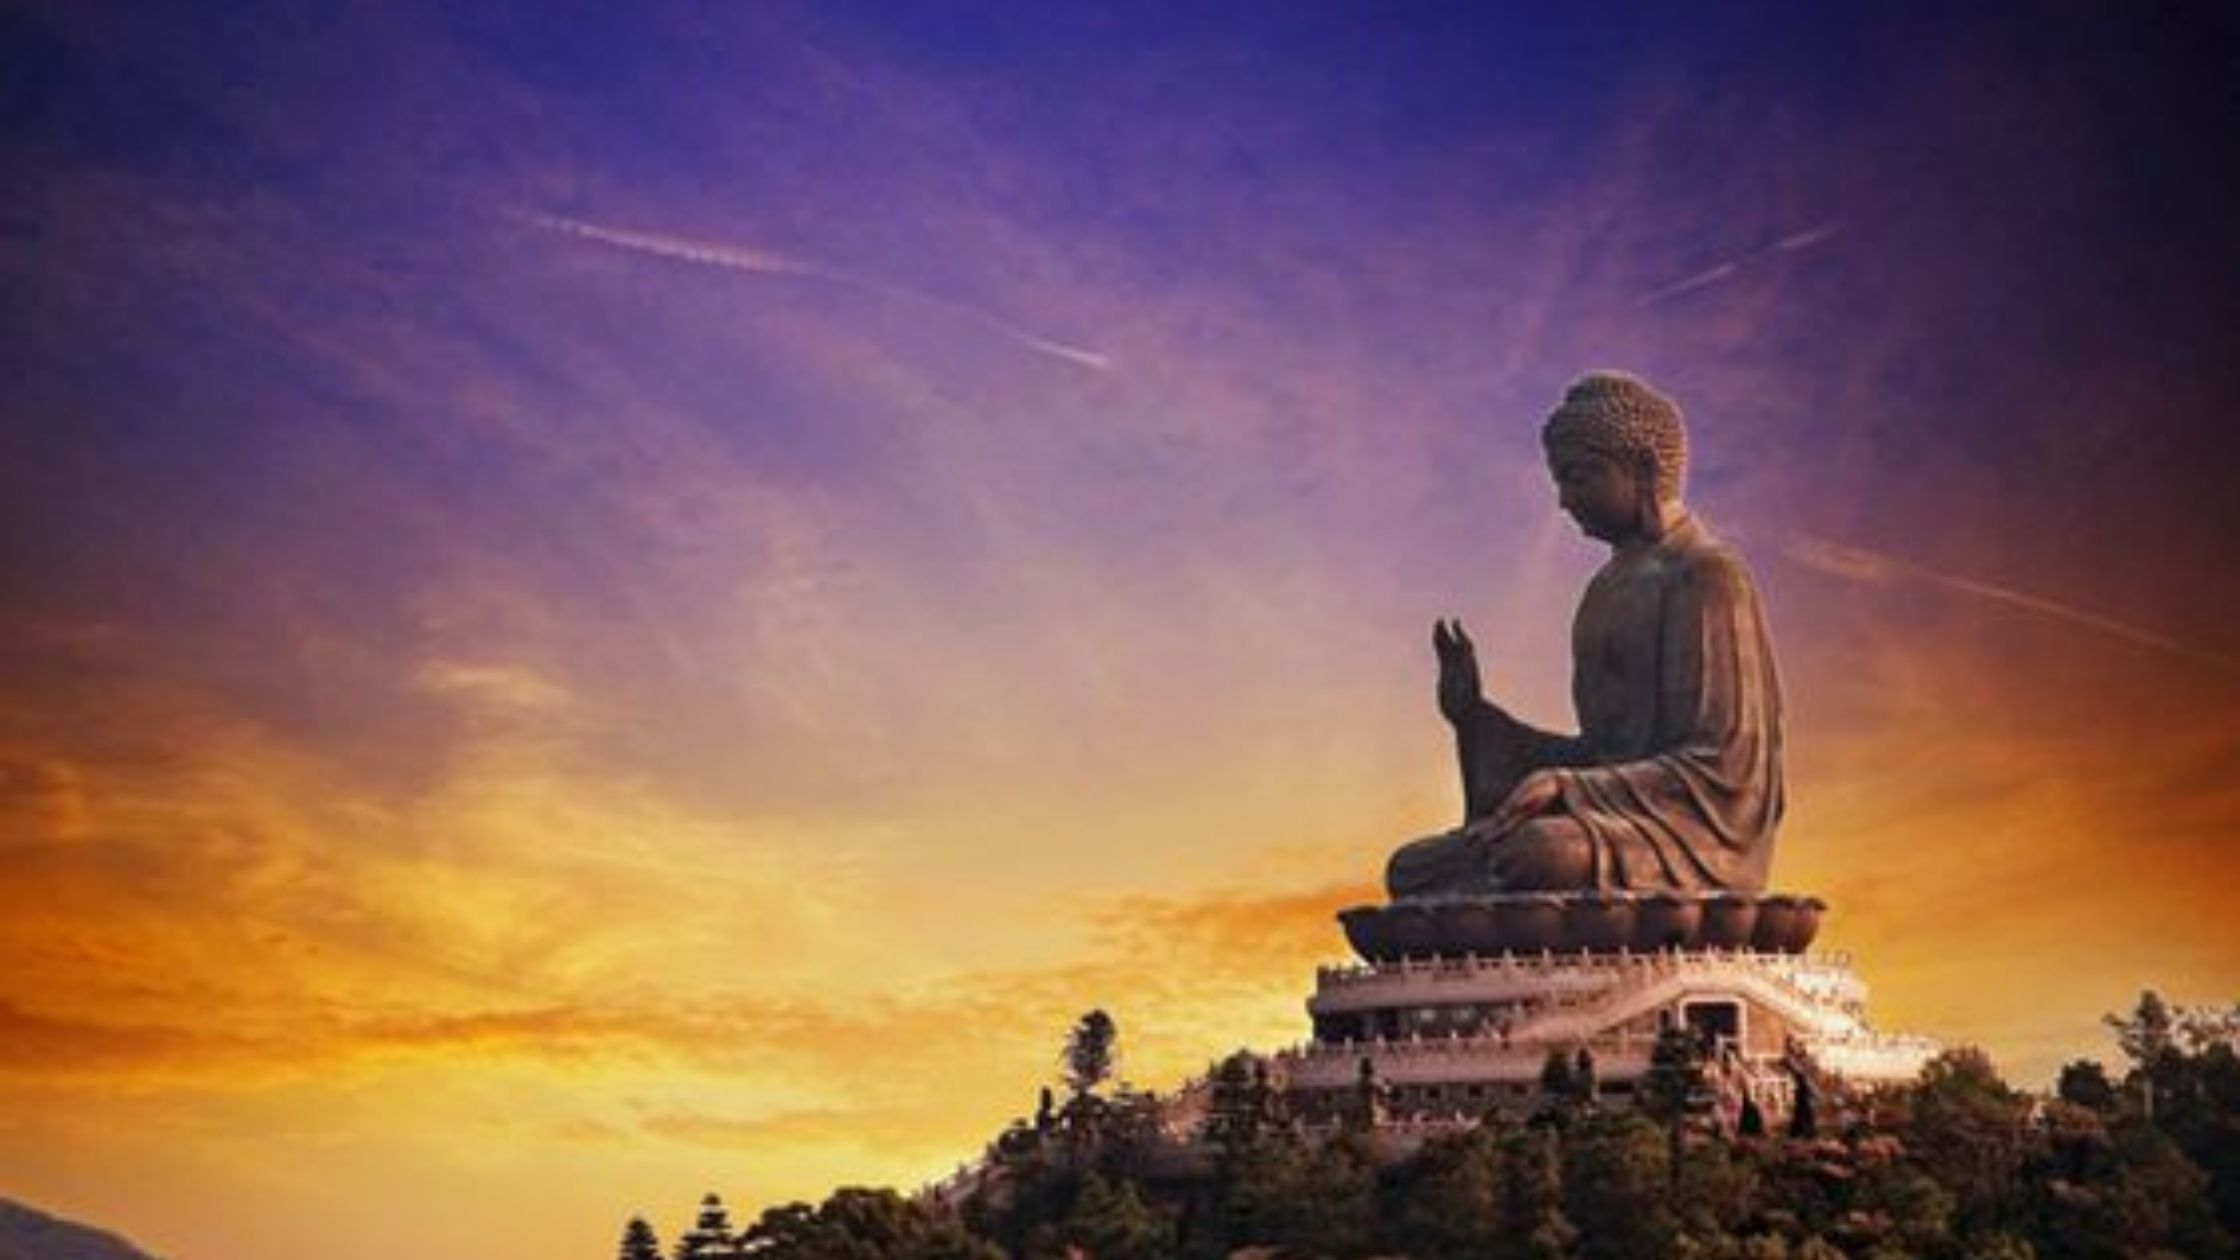 Gautama Buddha Quotes about Life, Love, Peace, Anger